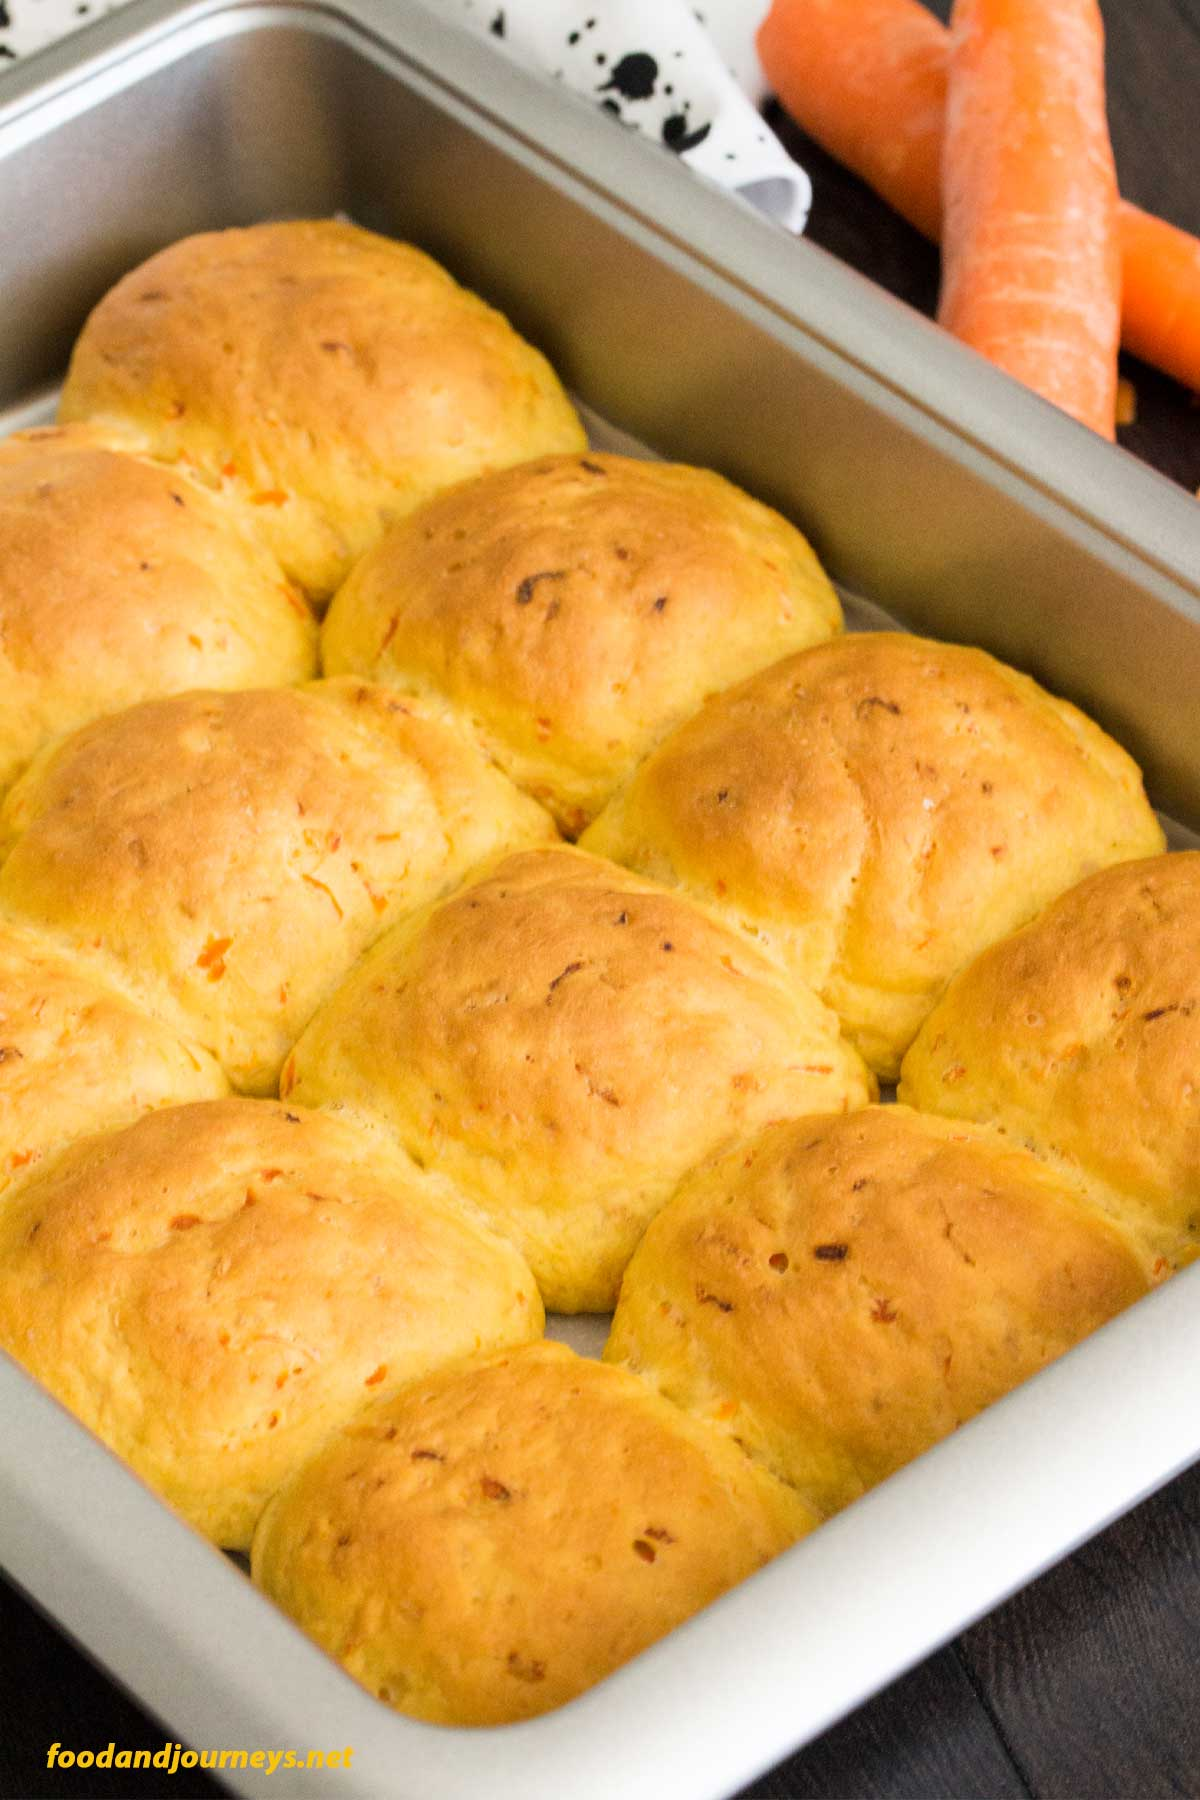 Straight out of the oven! Finnish Carrot Bread Rolls, still on a baking pan, to be moved to a bread basket for serving. You get bread and vegetable with every bite of these carrot rolls!